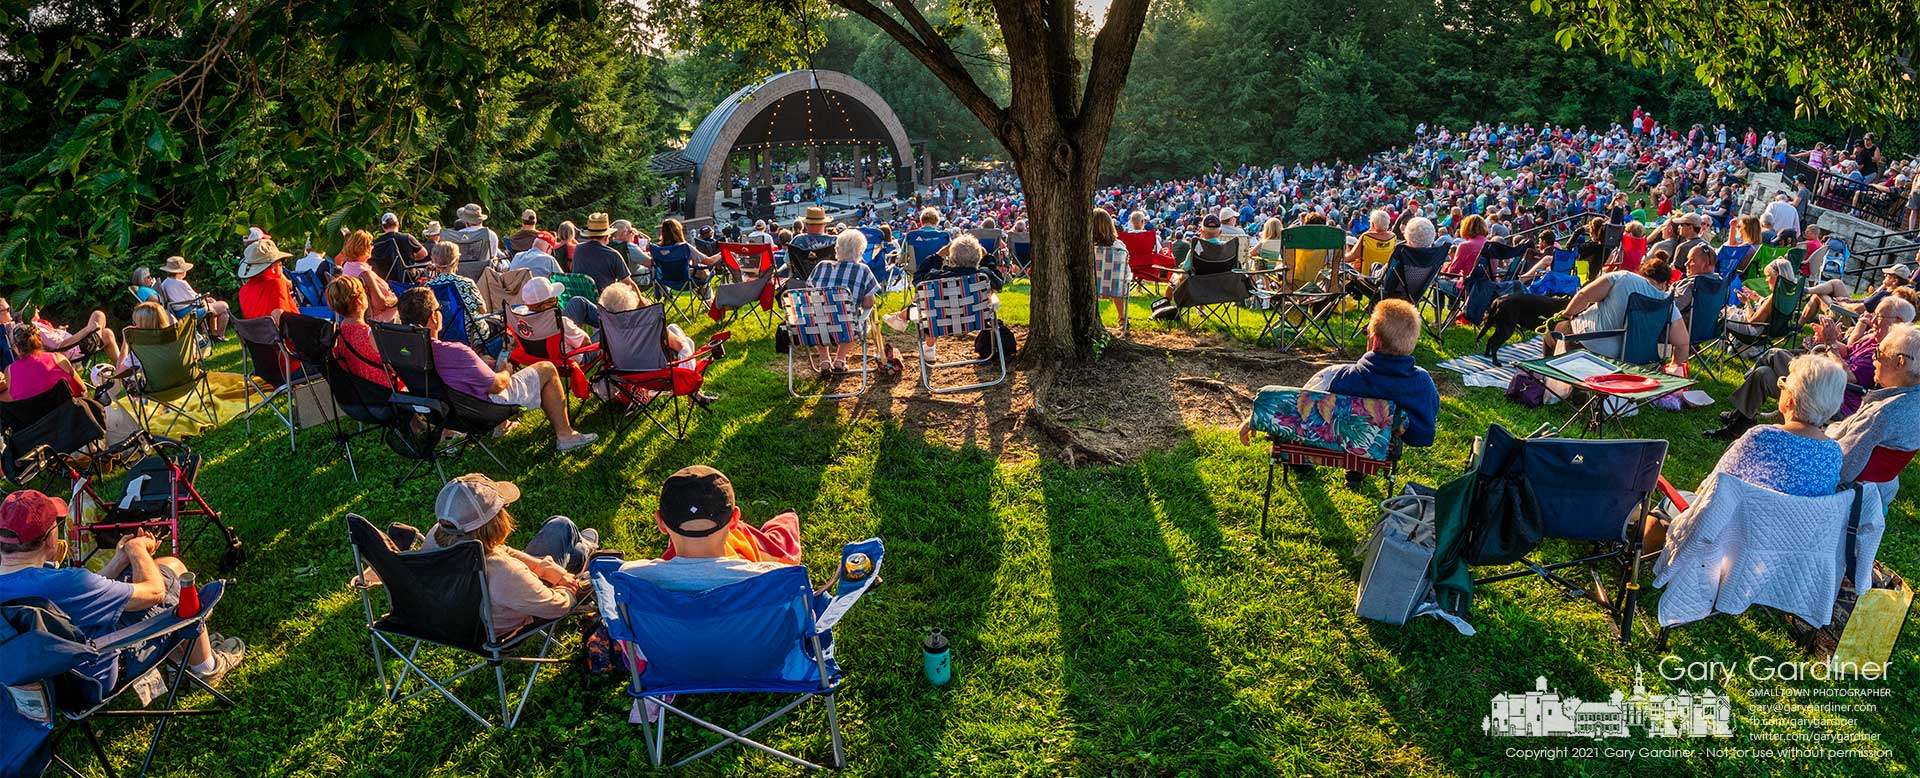 """An overflow crowd gathers on the lawns at the Westerville Amphitheatre Sunday evening to hear """"The British Invasion"""" as part of the Summer Concert Series that was canceled last year because of the pandemic. My Final Photo for August 1, 20-21."""